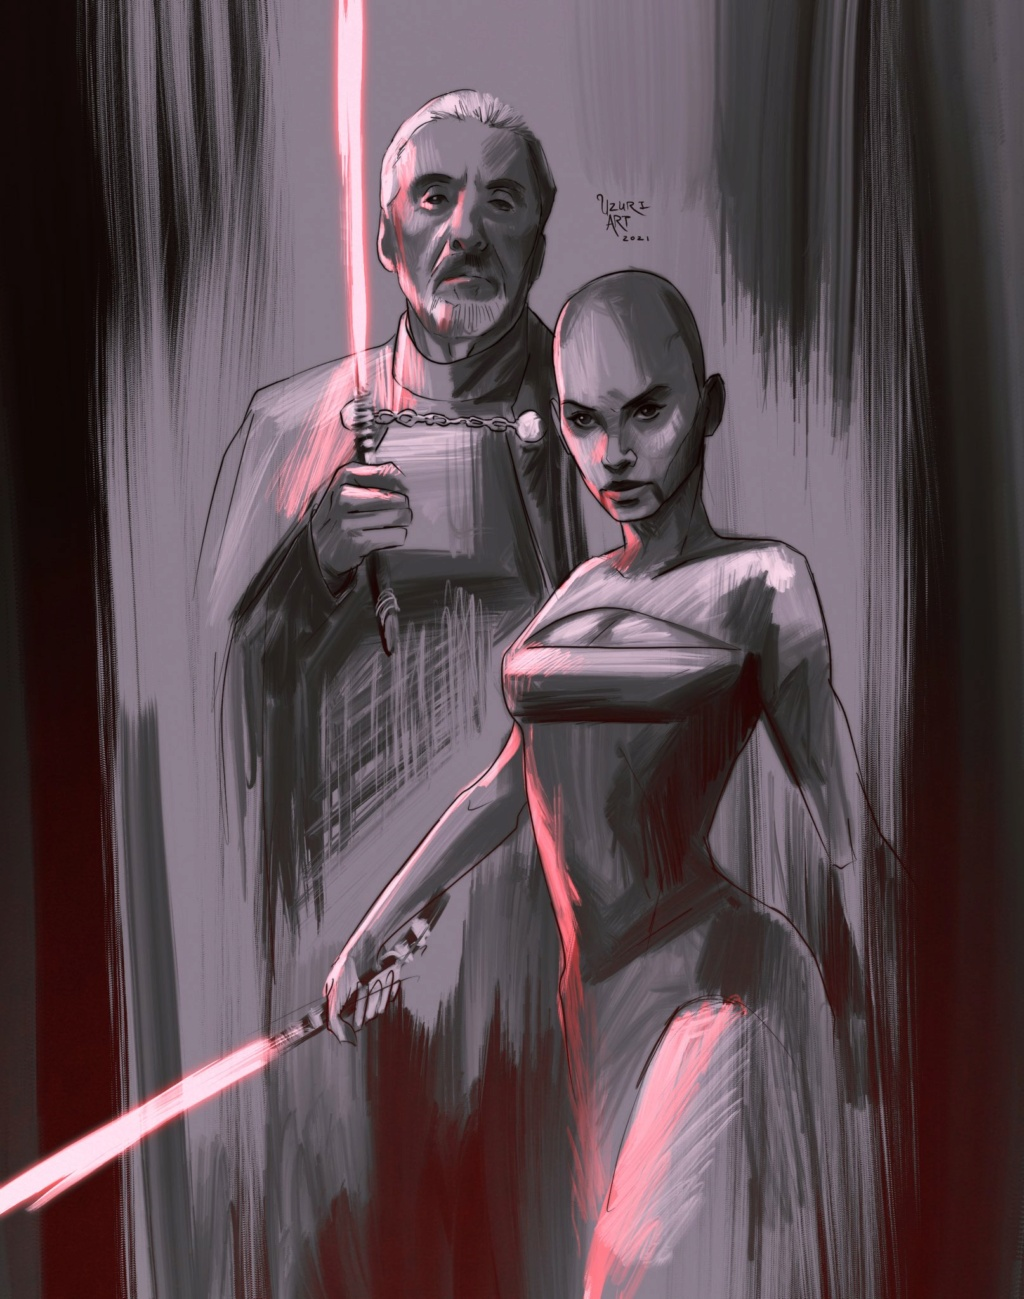 Digital Art par UZURI ART - Star Wars Uzuri_35